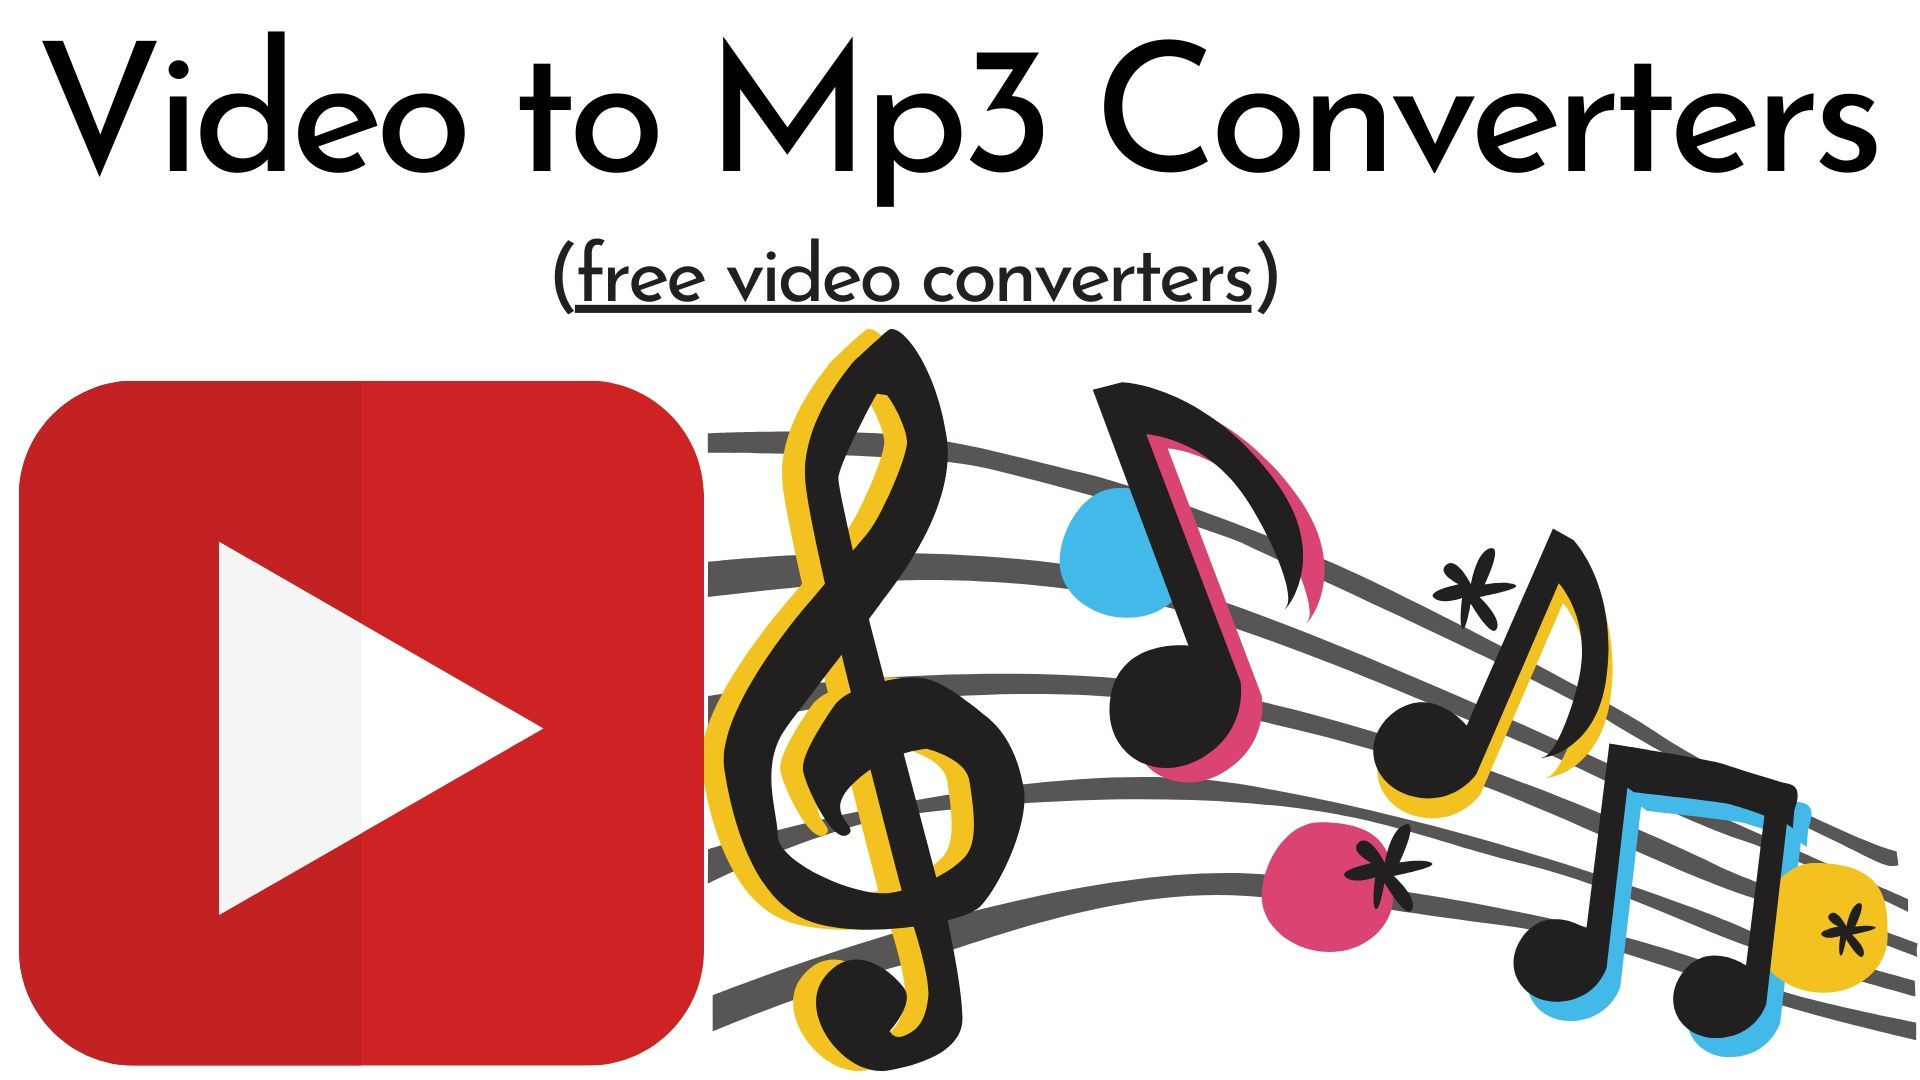 Video to Mp3 Convertors